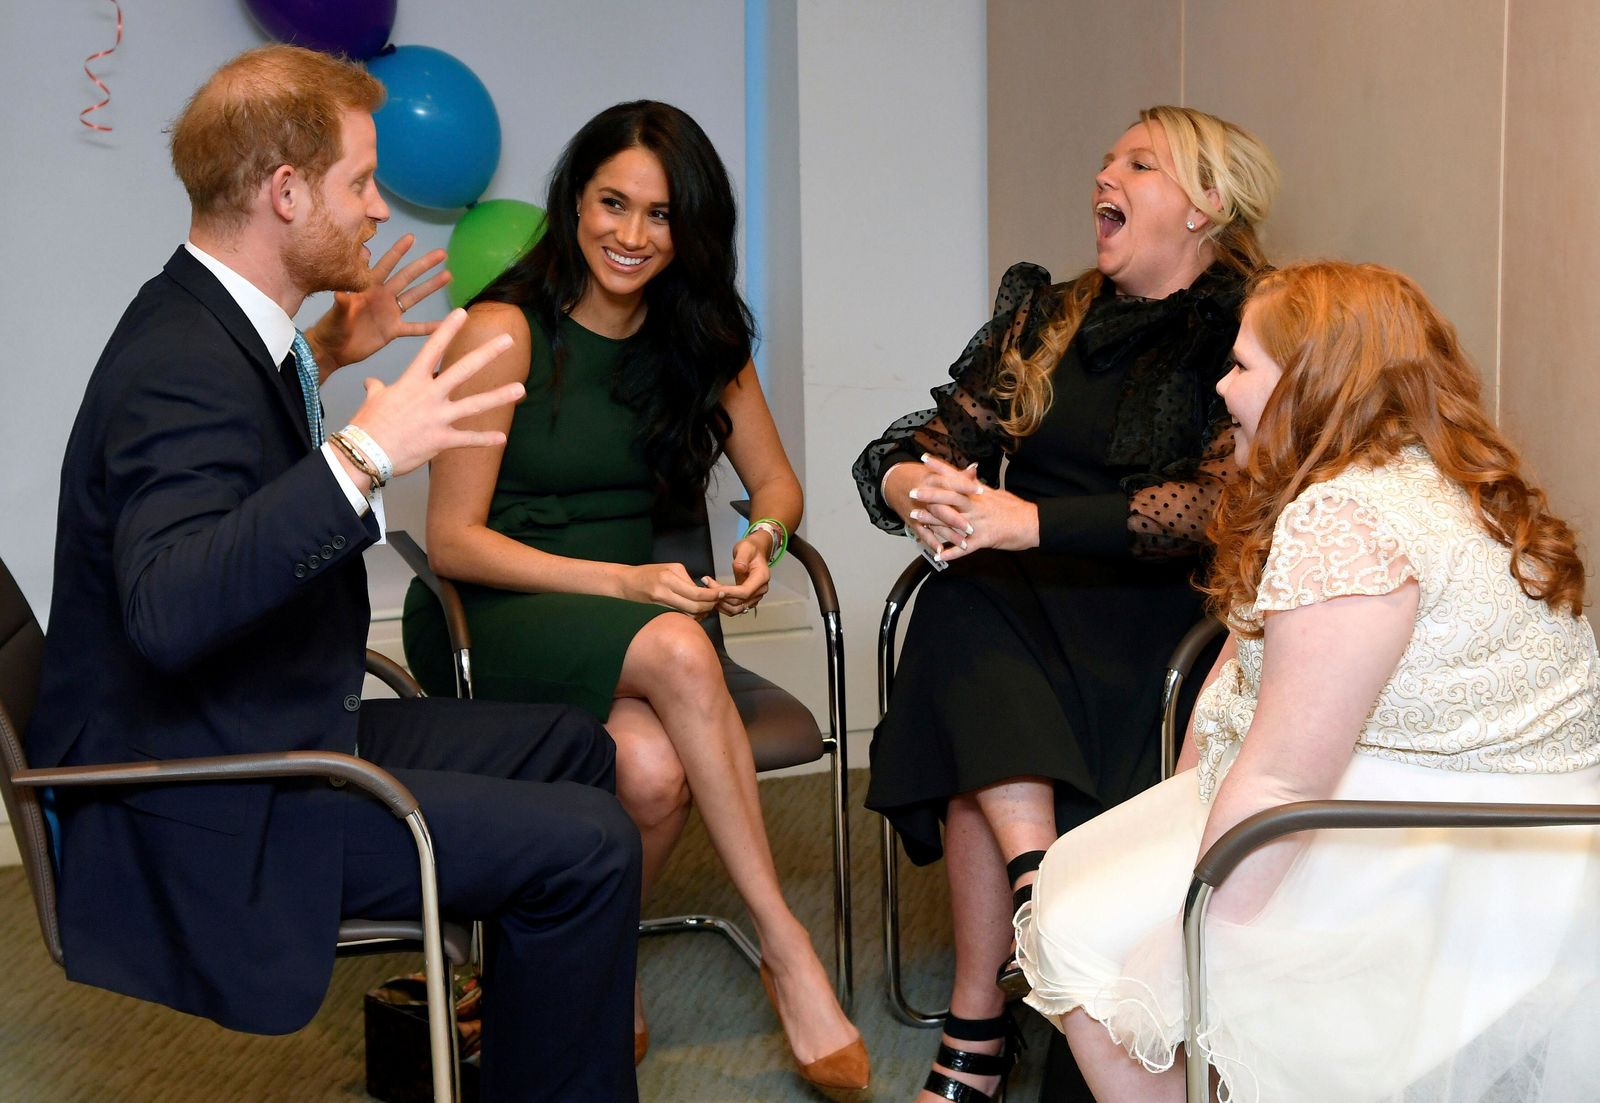 Britain's Prince Harry and Duchess of Sussex, left, meet with Milly Sutherland, right, and her mother Angela during the annual WellChild Awards in London, Tuesday Oct. 15, 2019. (Toby Melville/Pool via AP)